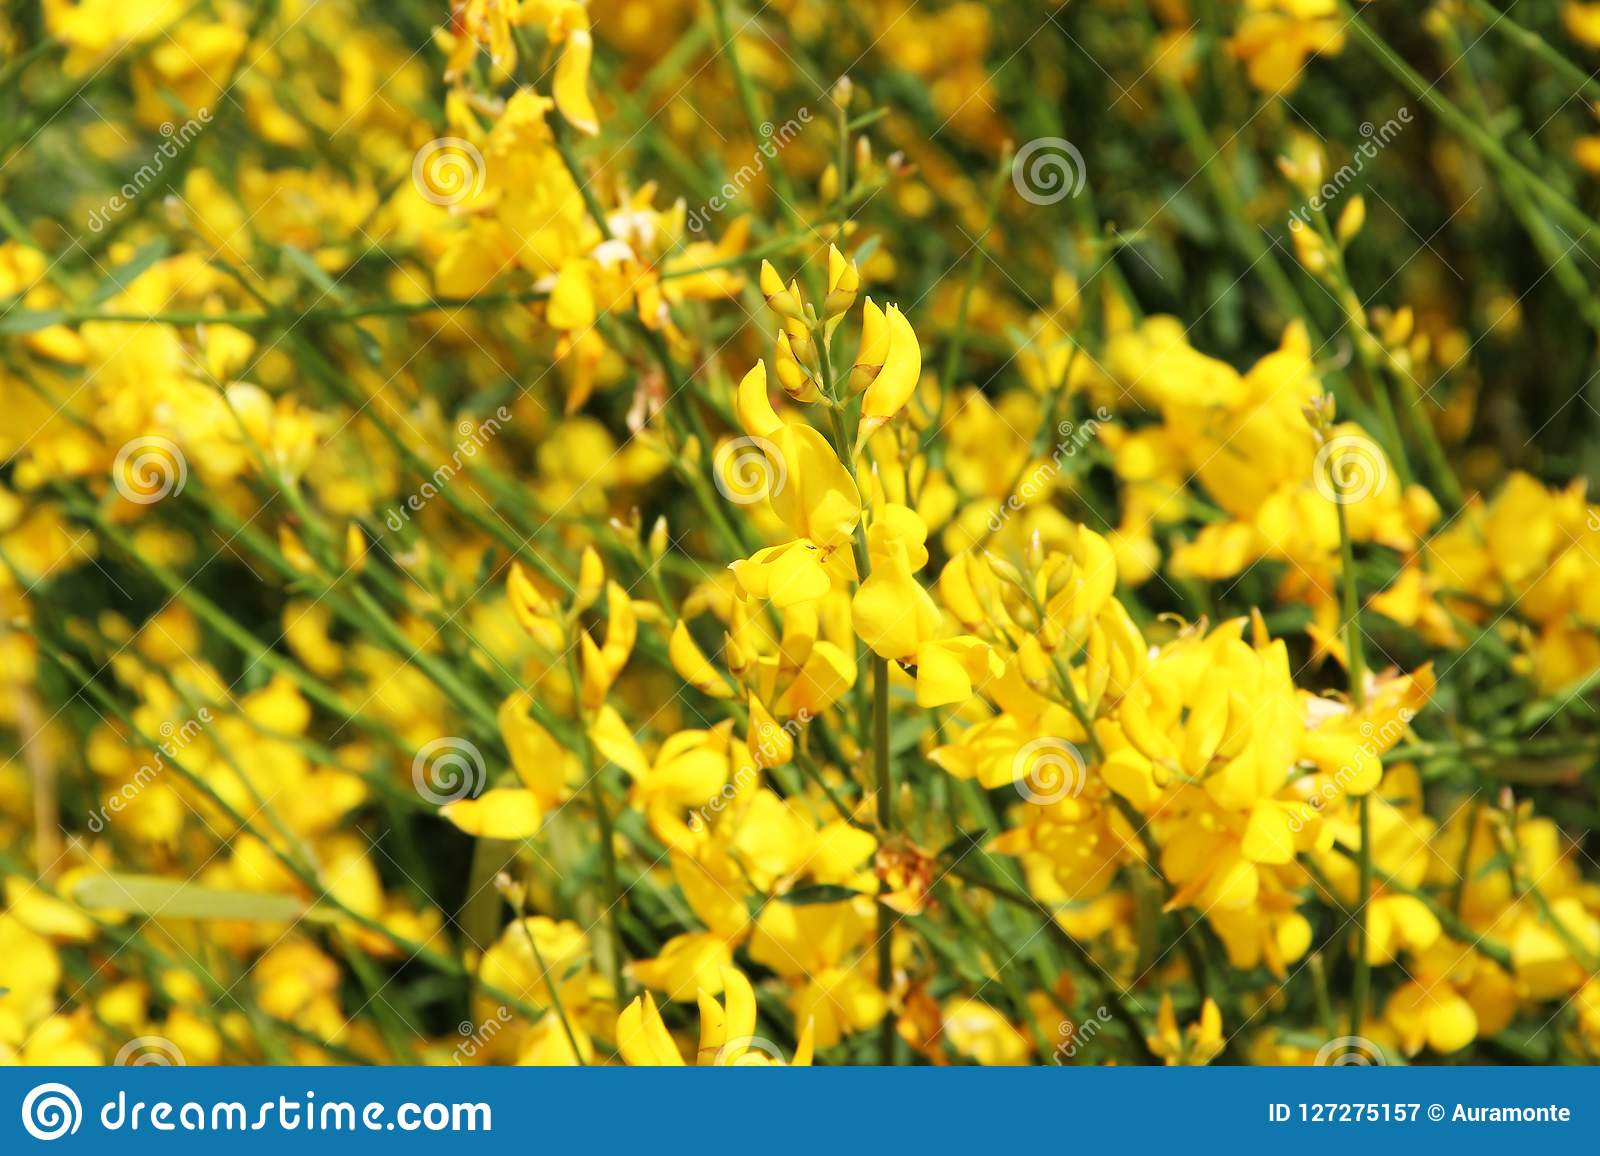 Photo Of Background Flowering Yellow Broom Flower Stock Image